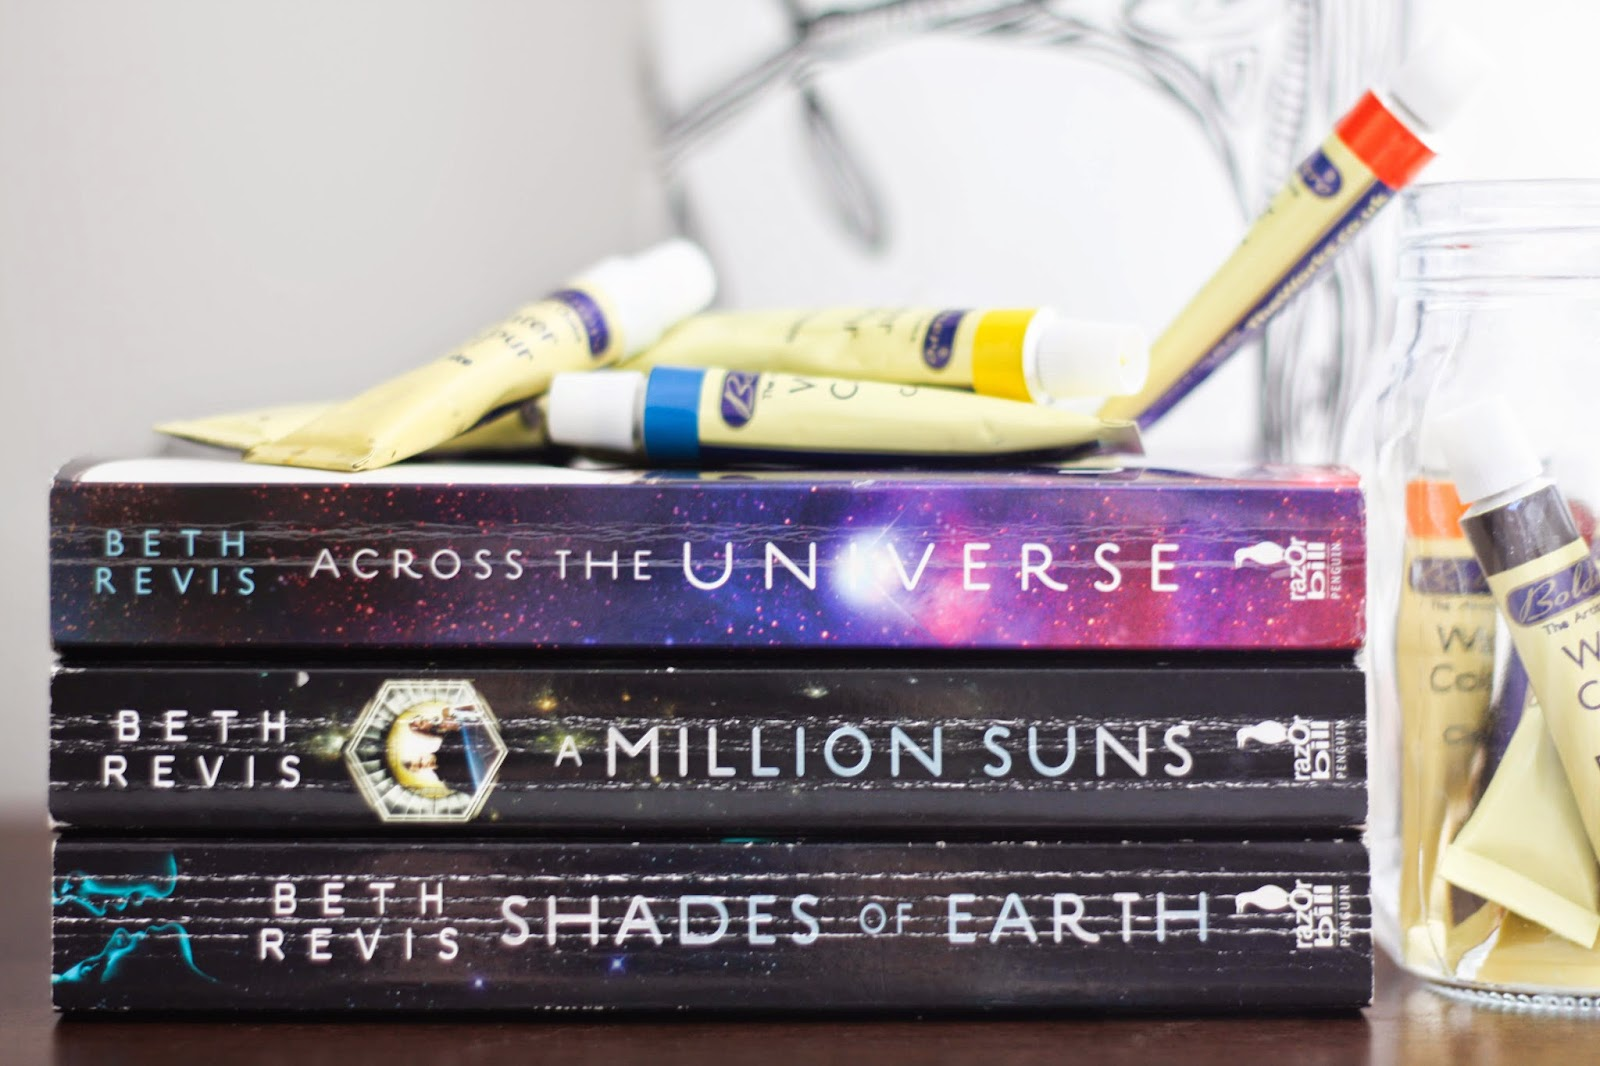 Beth Revis Across the Universe book review